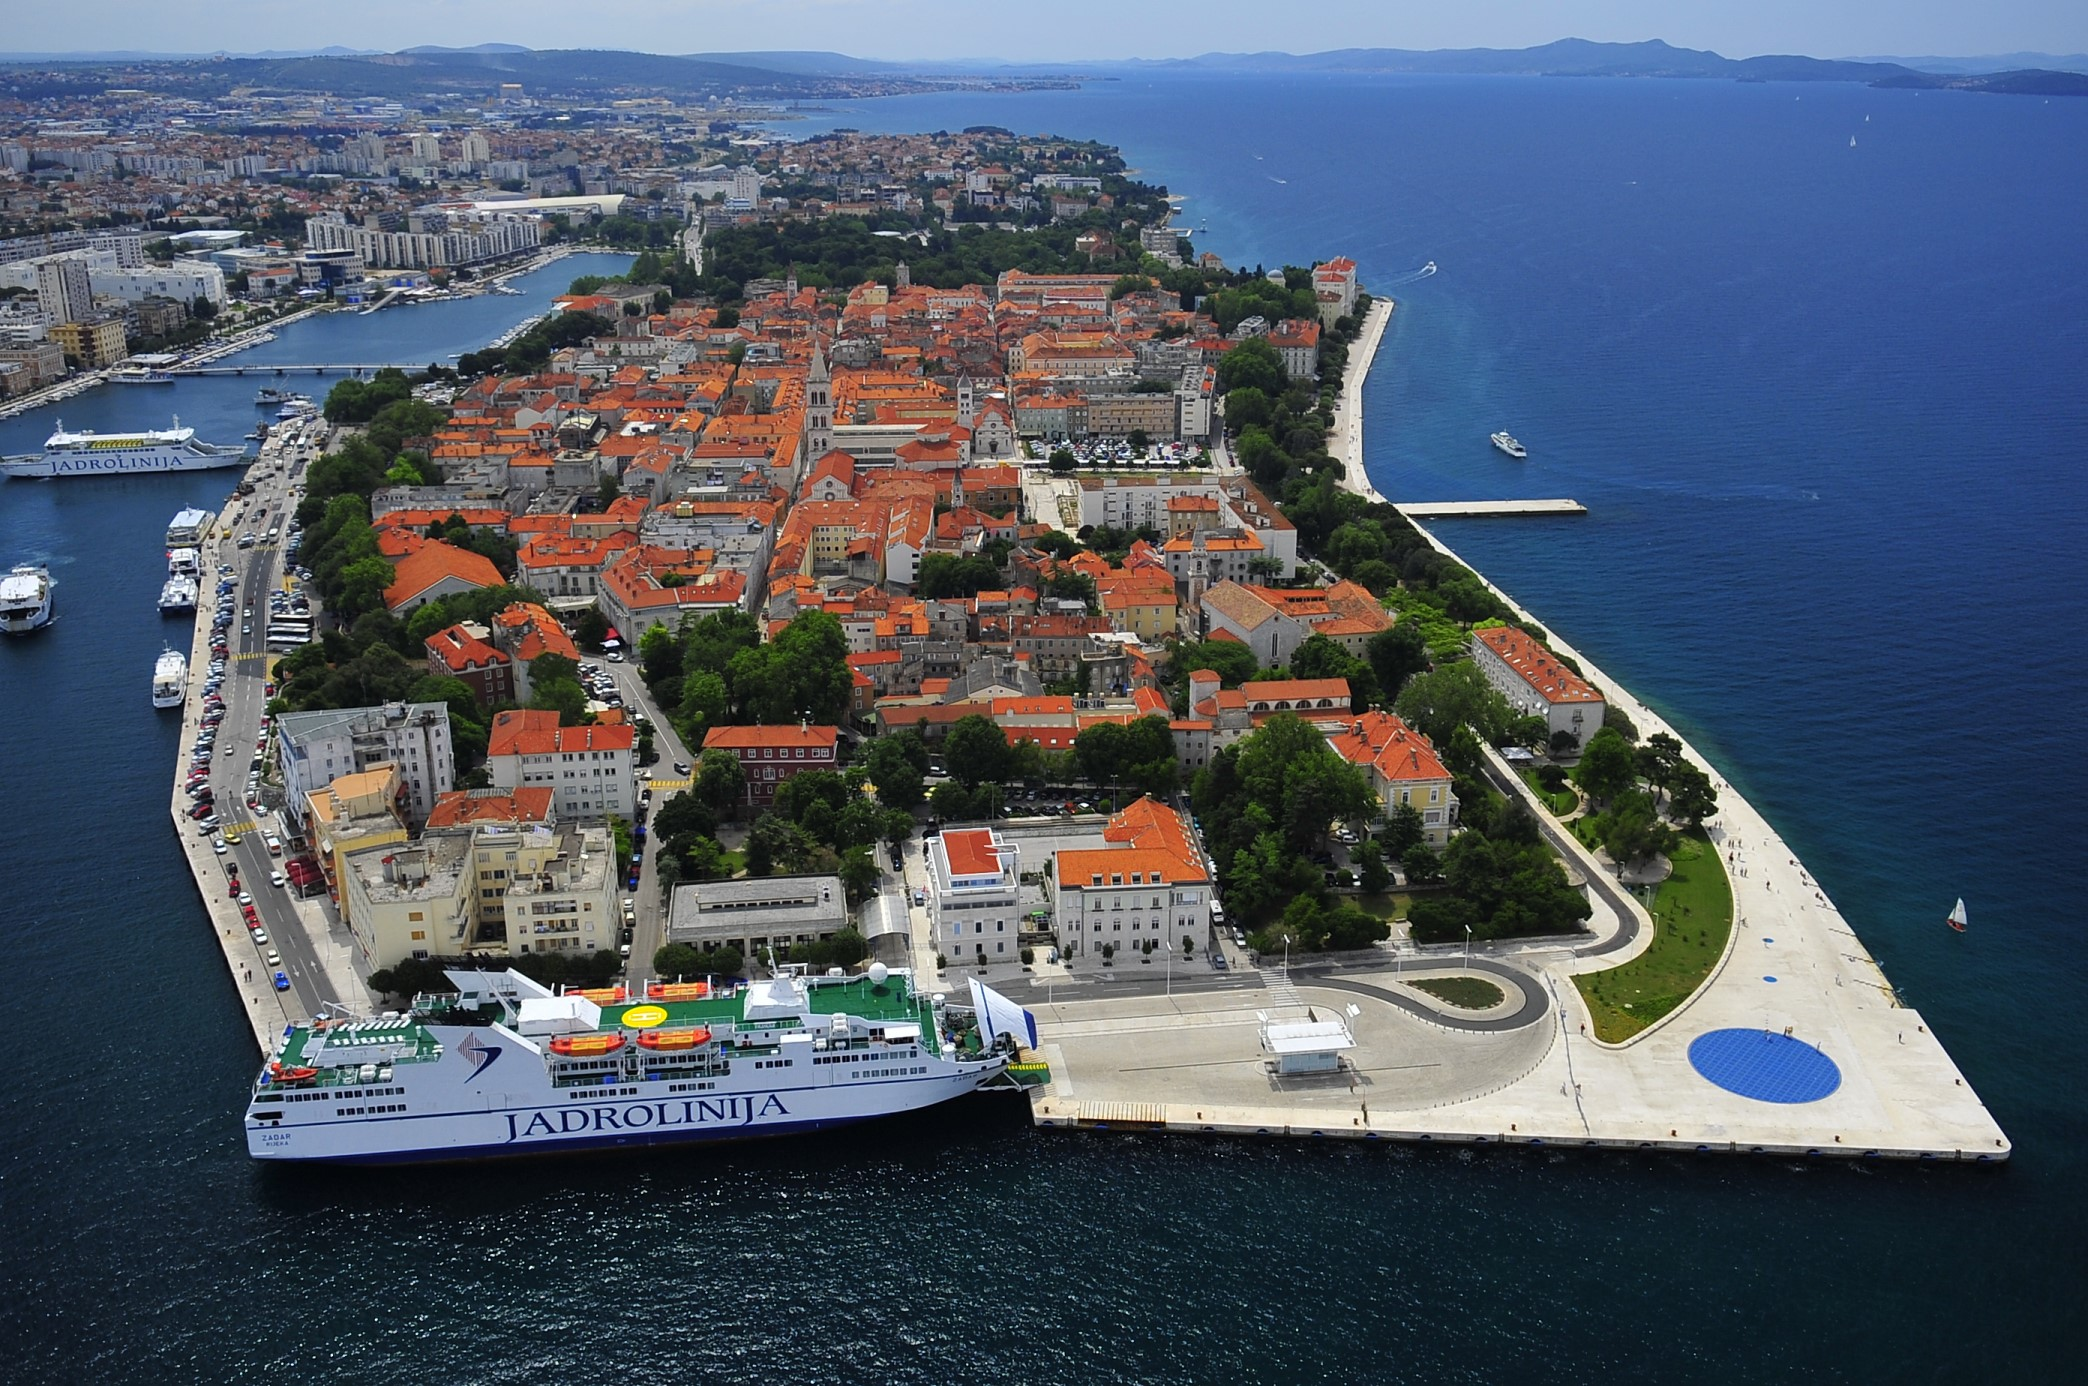 Zadar, Croatia - Monterrasol small group tours to Zadar, Croatia. Travel agency offers small group car tours to see Zadar in Croatia. Order small group tour to Zadar with departure date on request.